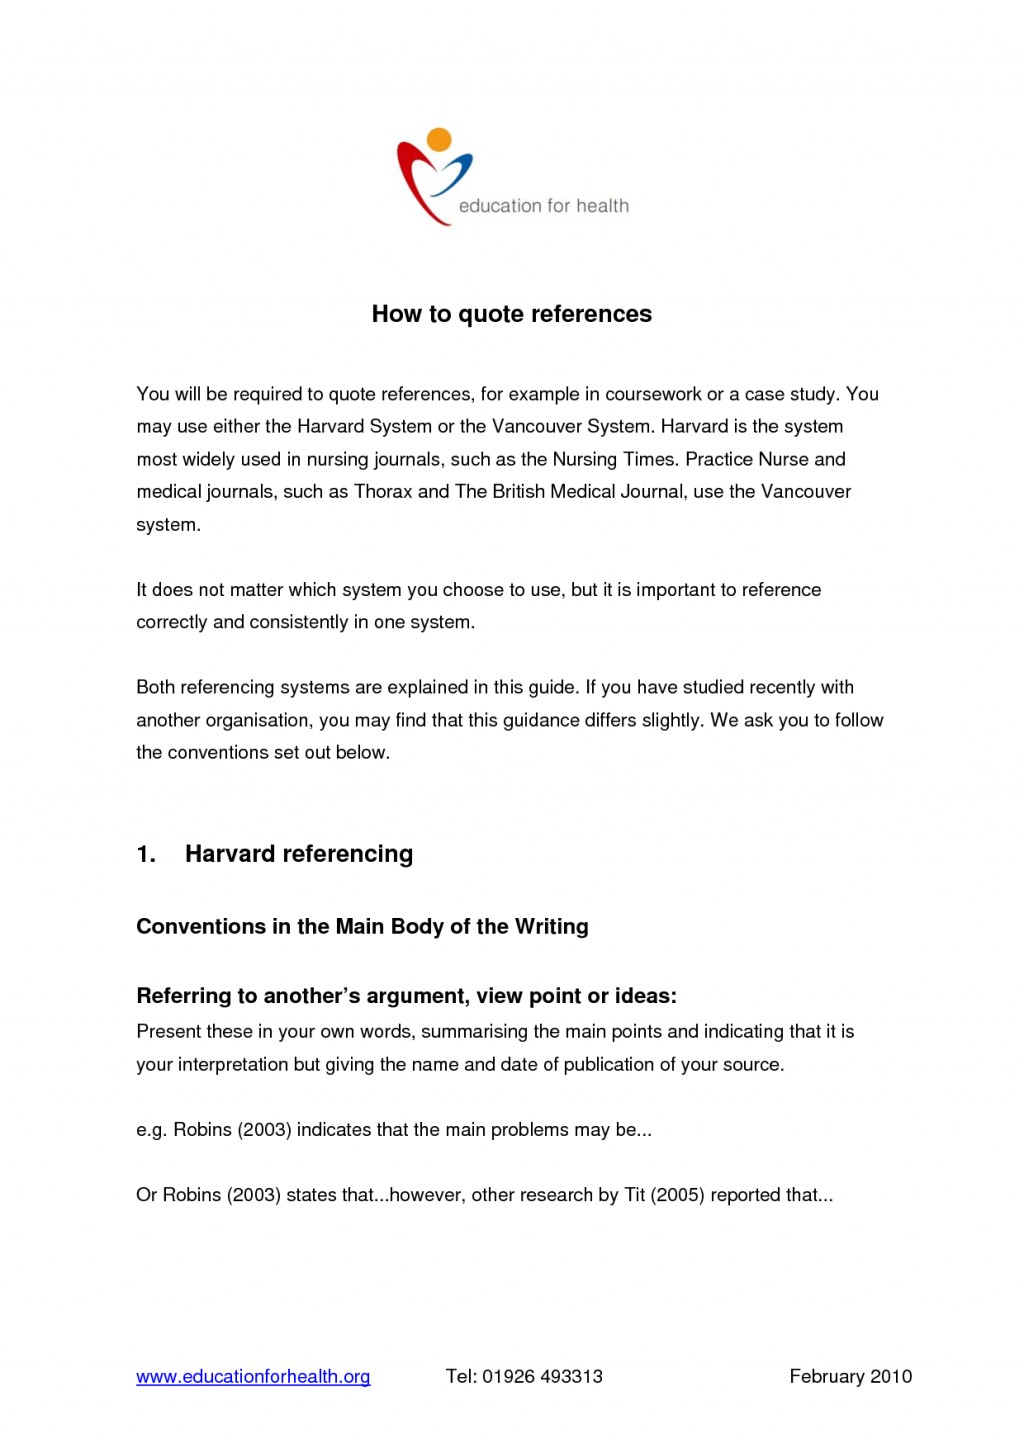 006 Research Paper Appendices Example In Harvard Style Excellent Large